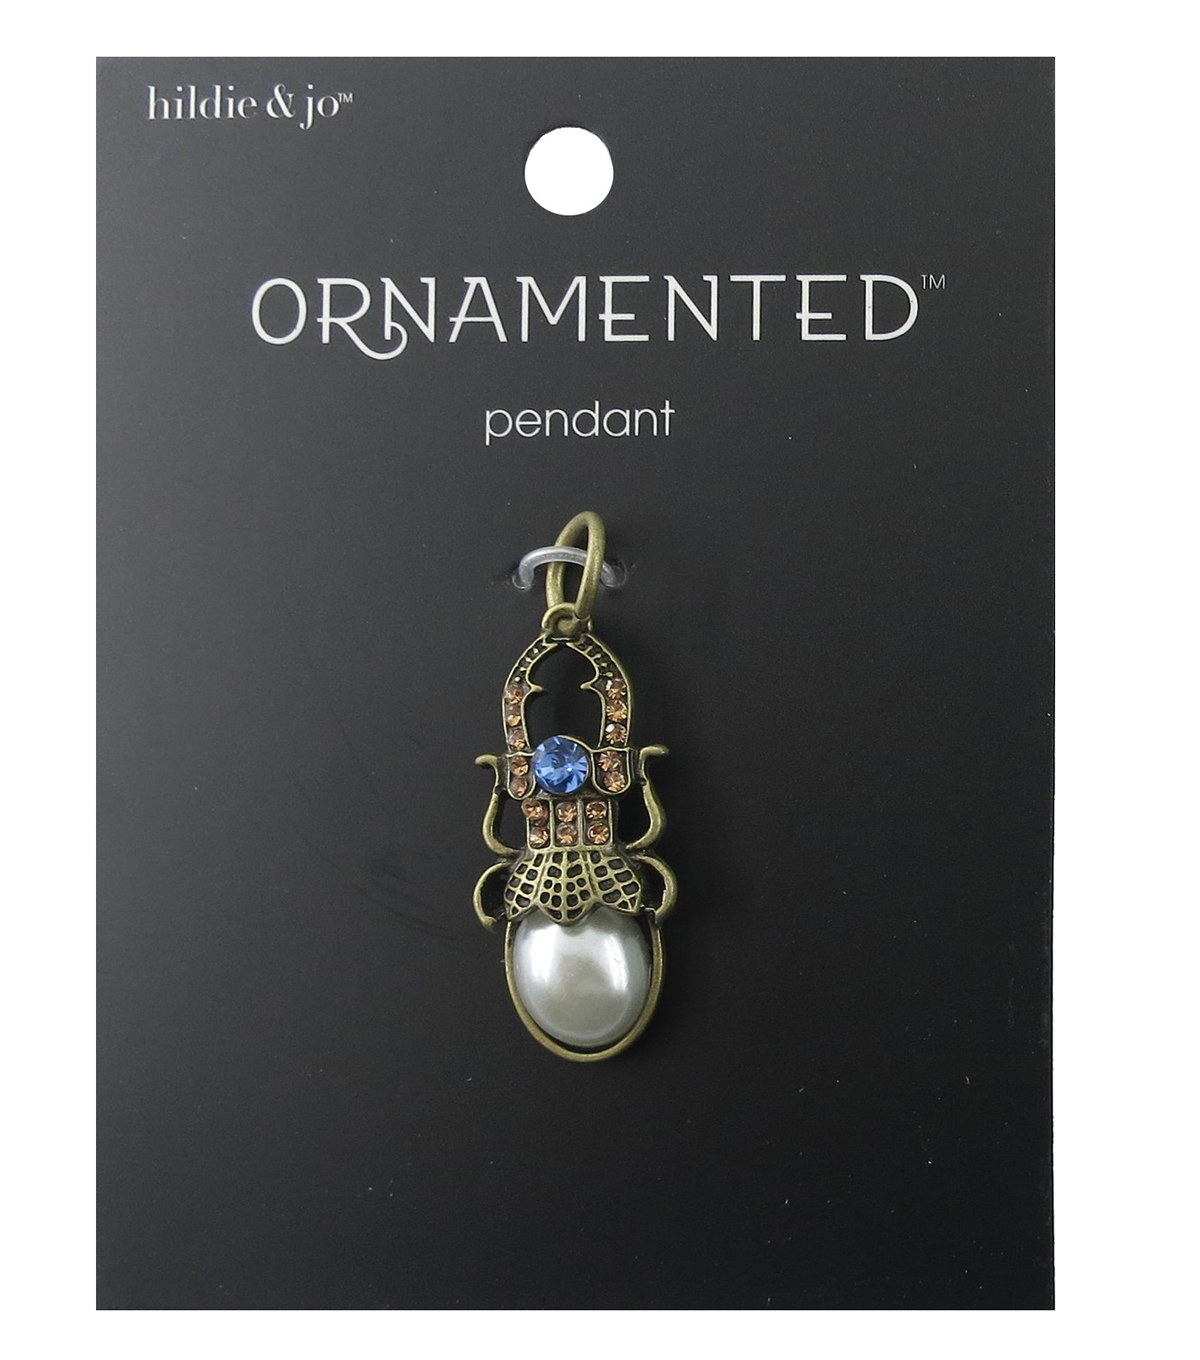 hildie & jo Ornamented Bug Antique Gold Pendant-Pearl & Crystals